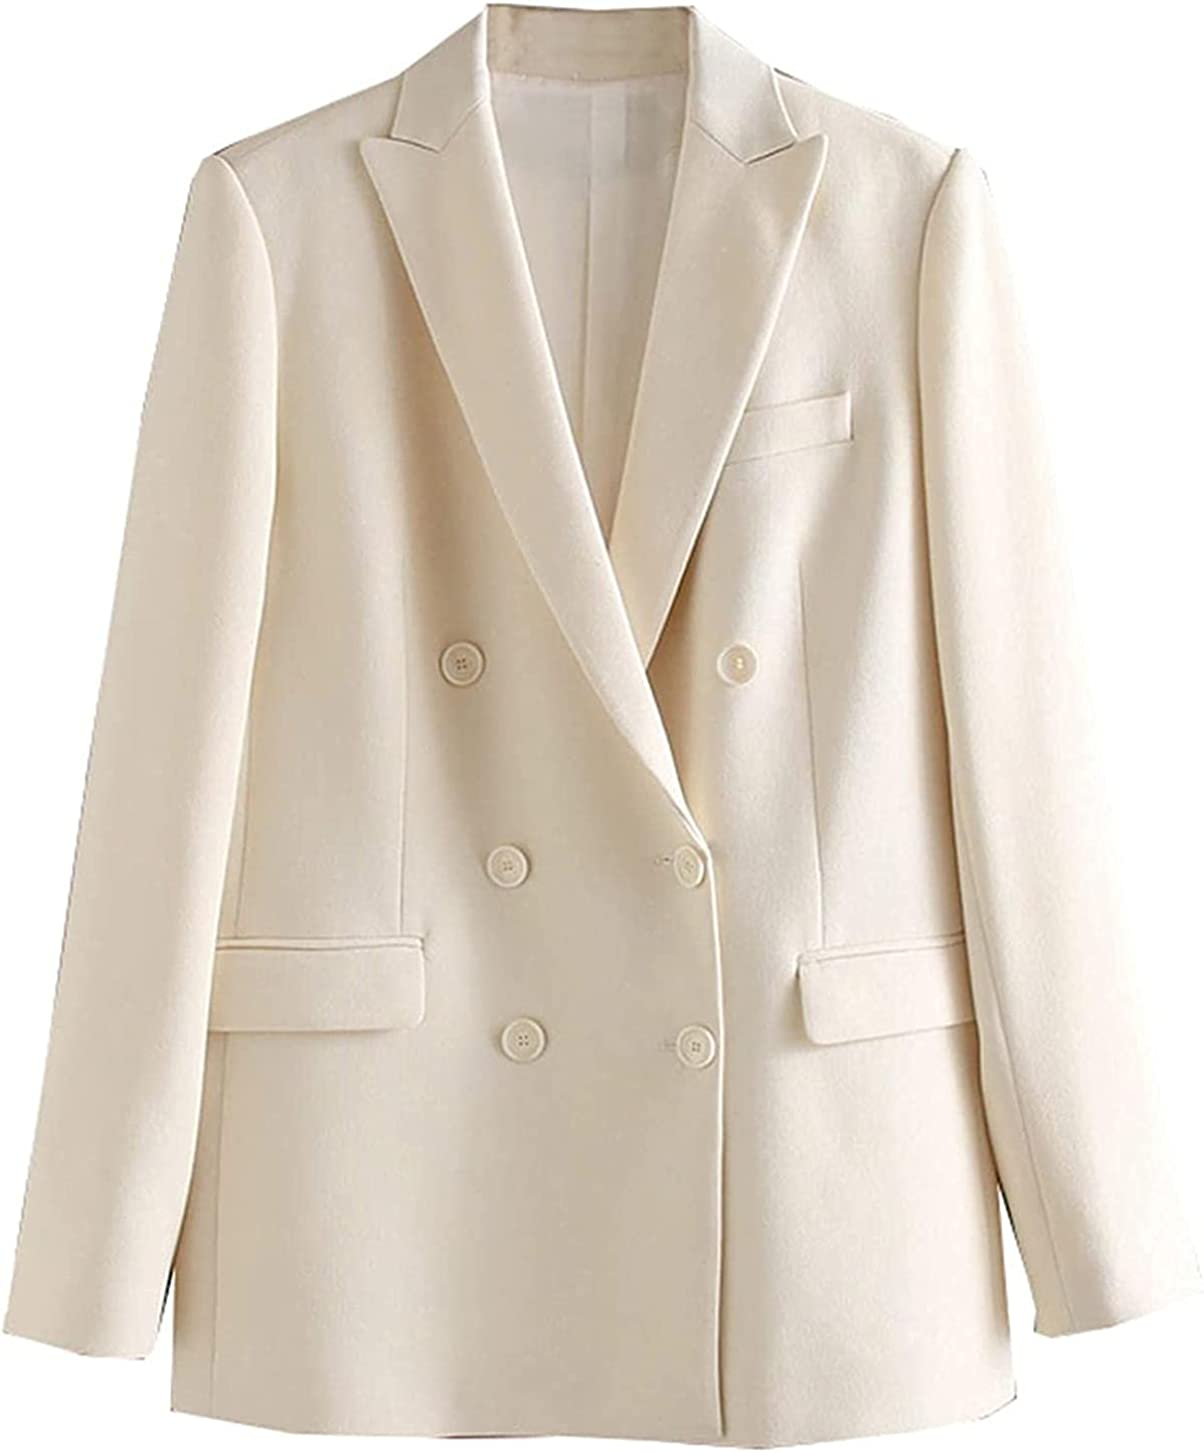 White Blazer for Woman Summer Blazer Double Breasted Jackets Lad